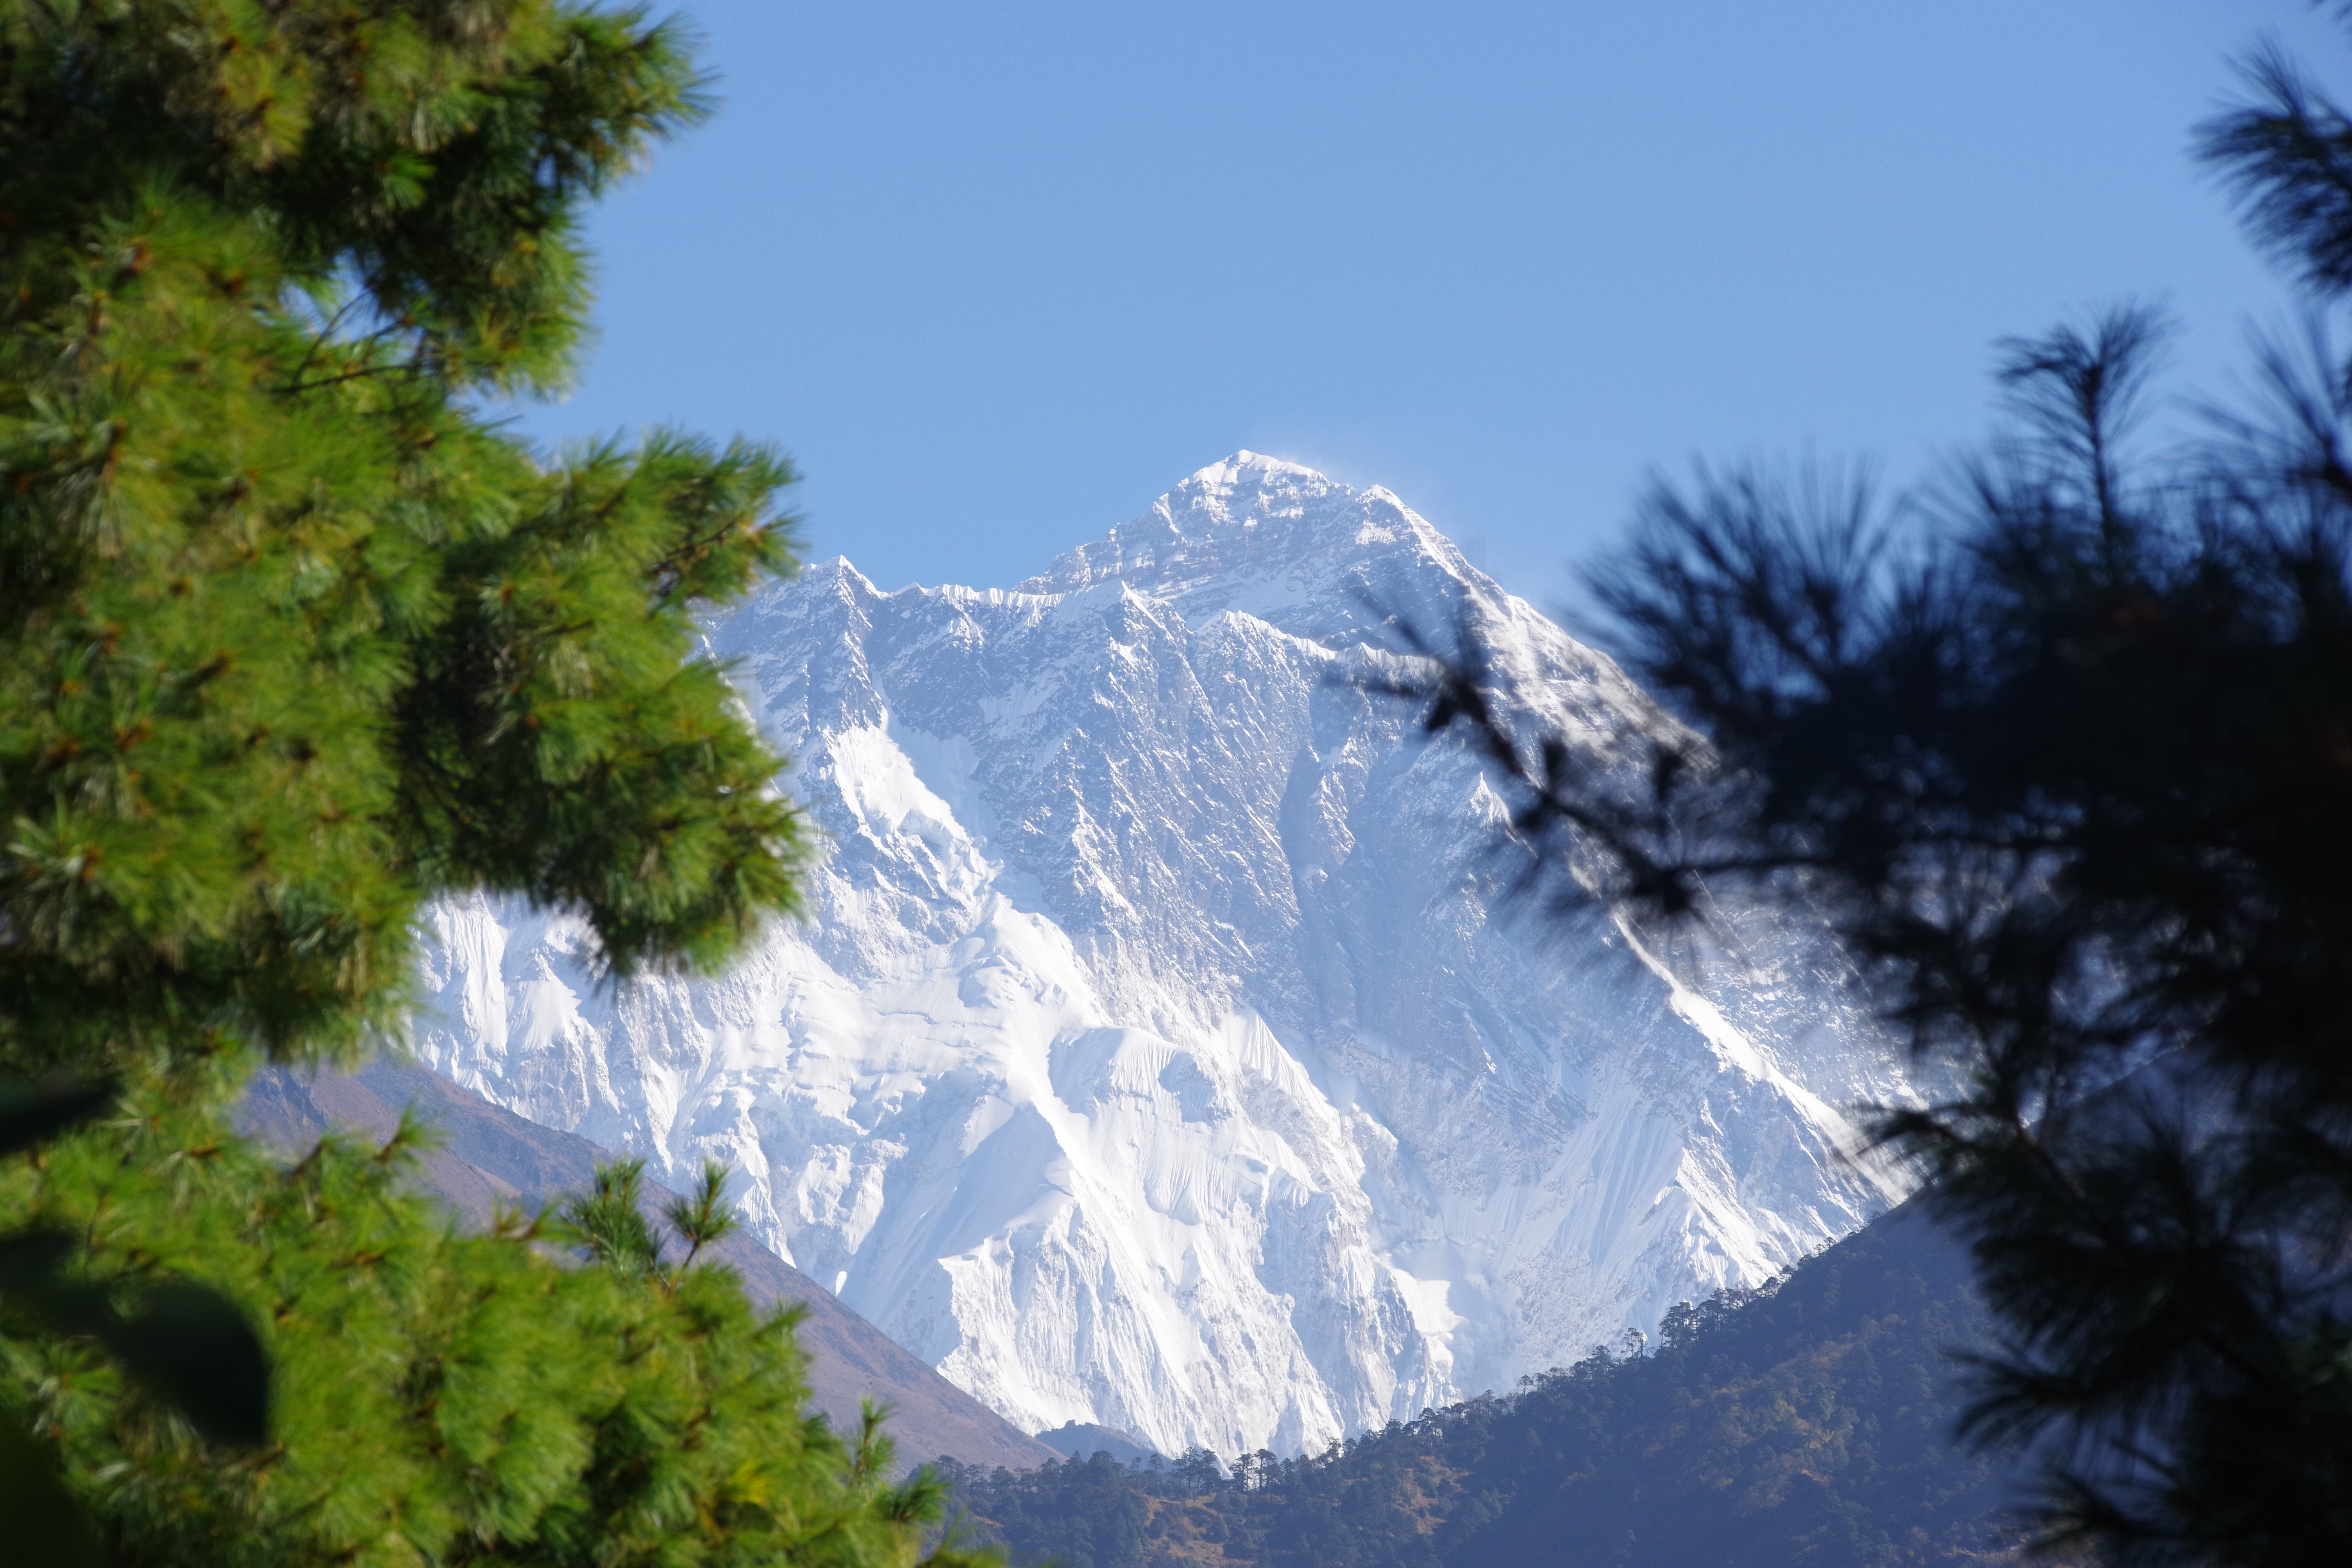 Mountain views from along the trek to Everest Base Camp